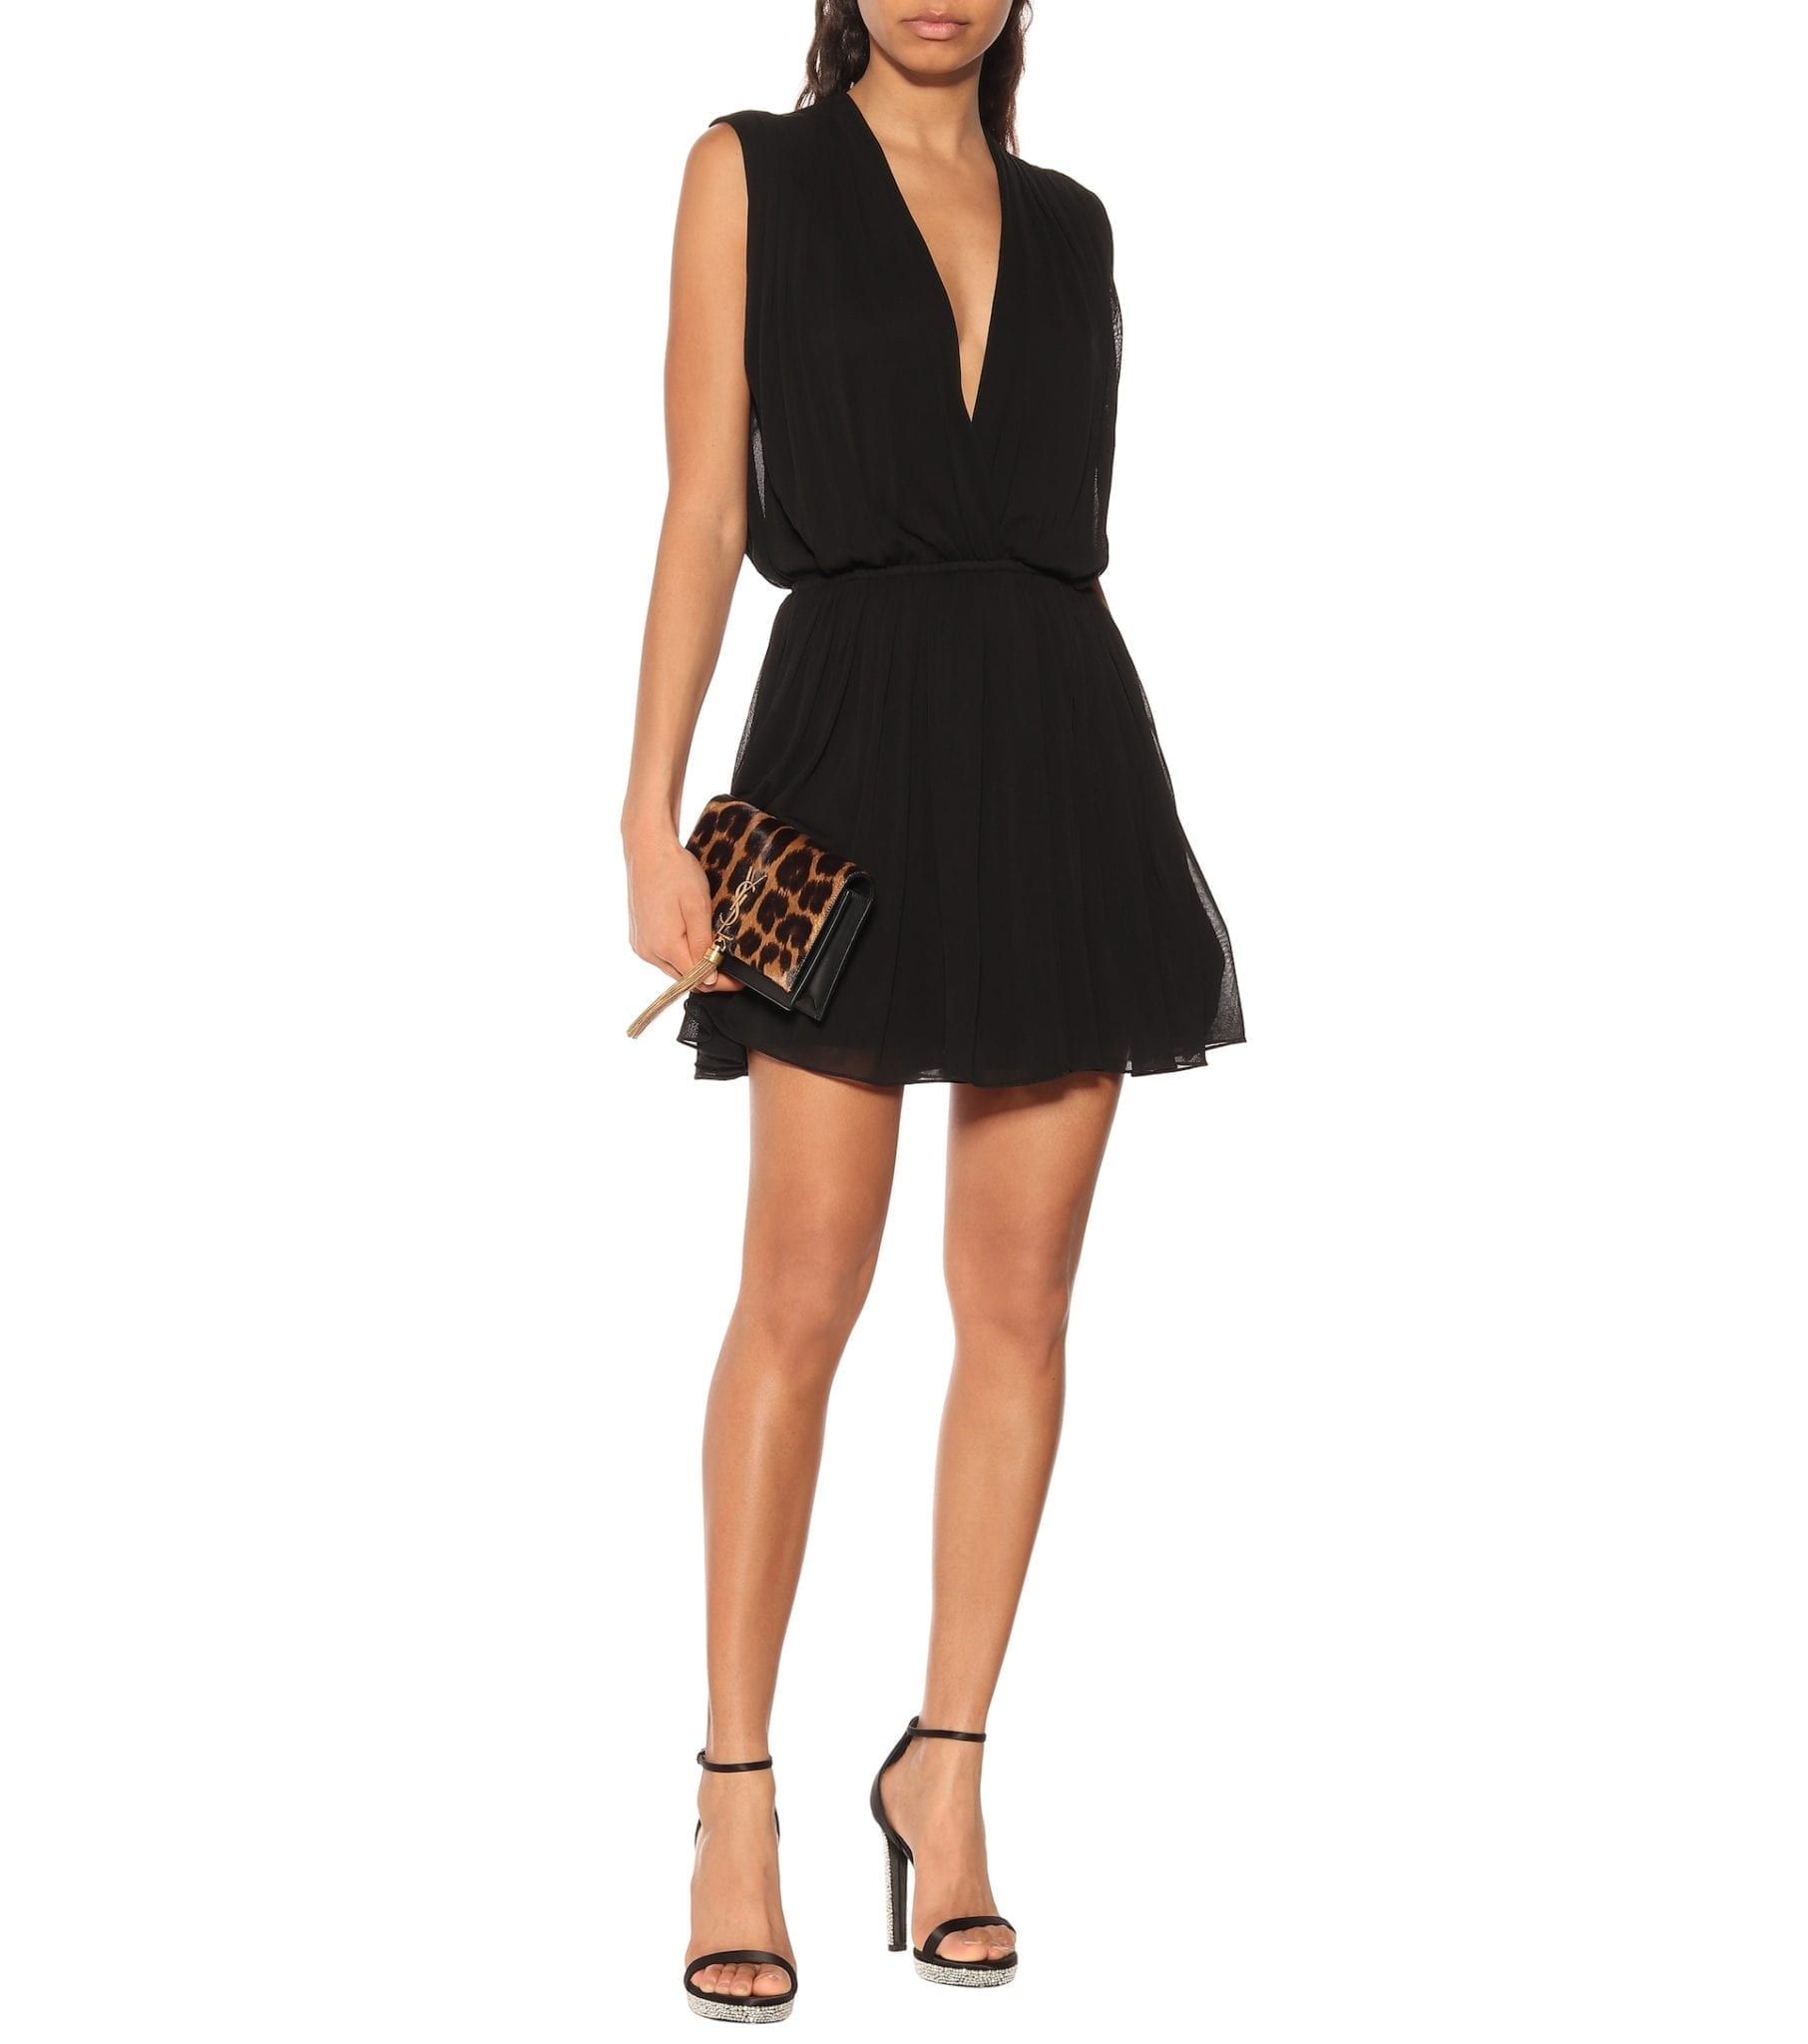 SAINT LAURENT Crêpe Mini Black Dress